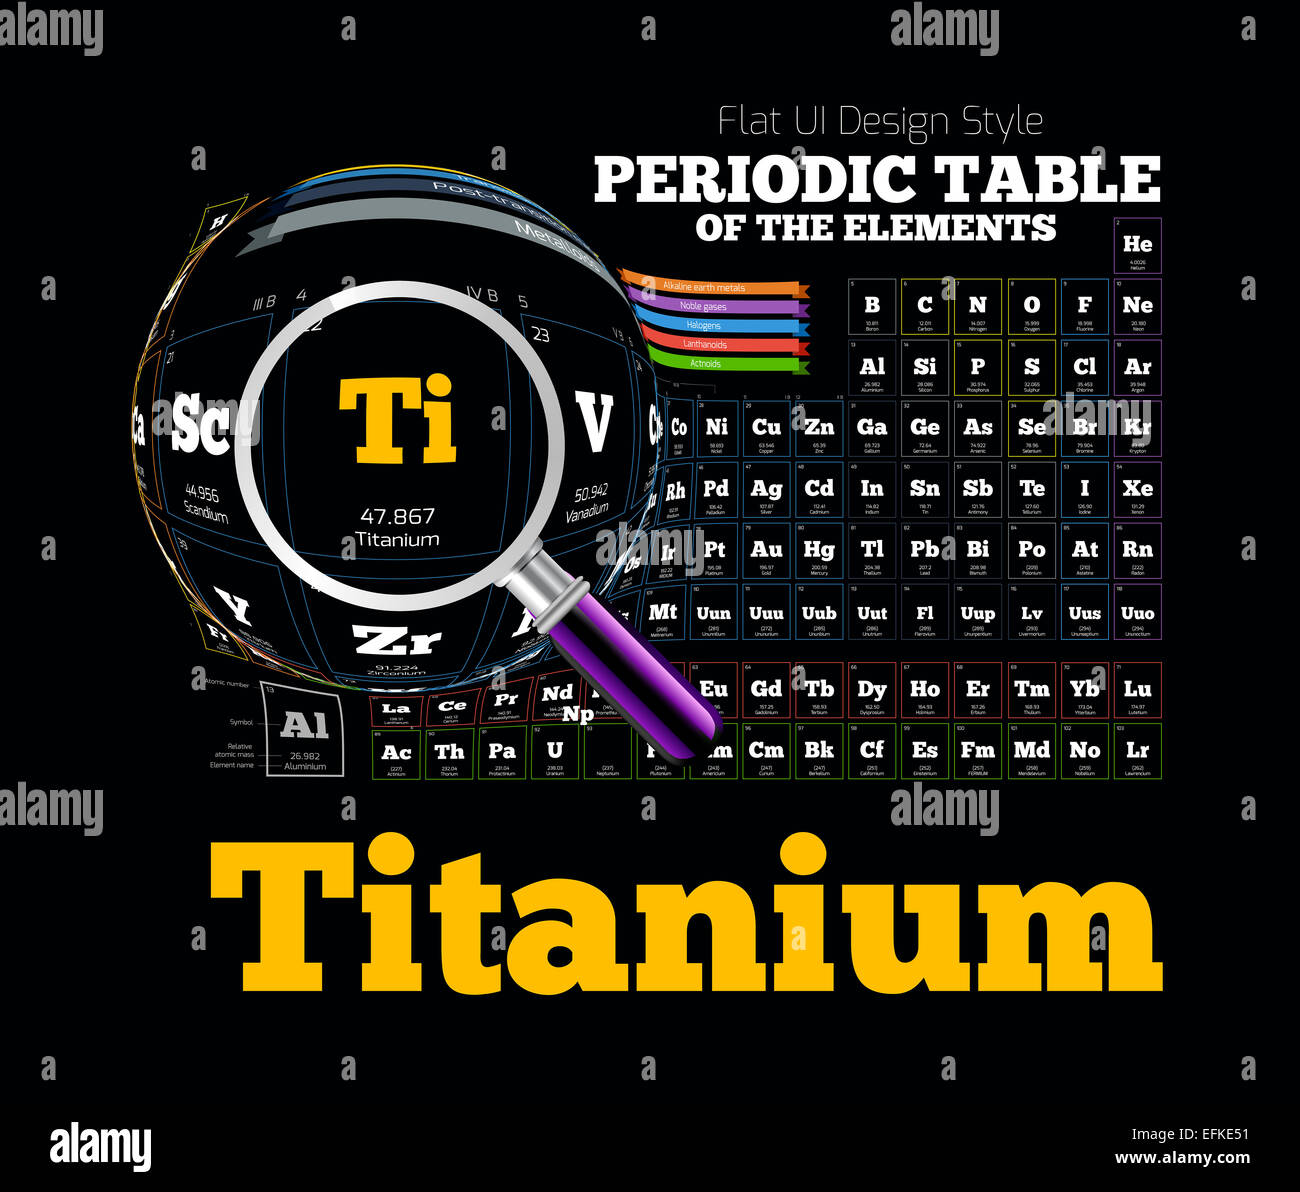 Hydrogen chemical element periodic table stock photos hydrogen periodic table of the element titanium stock image urtaz Images